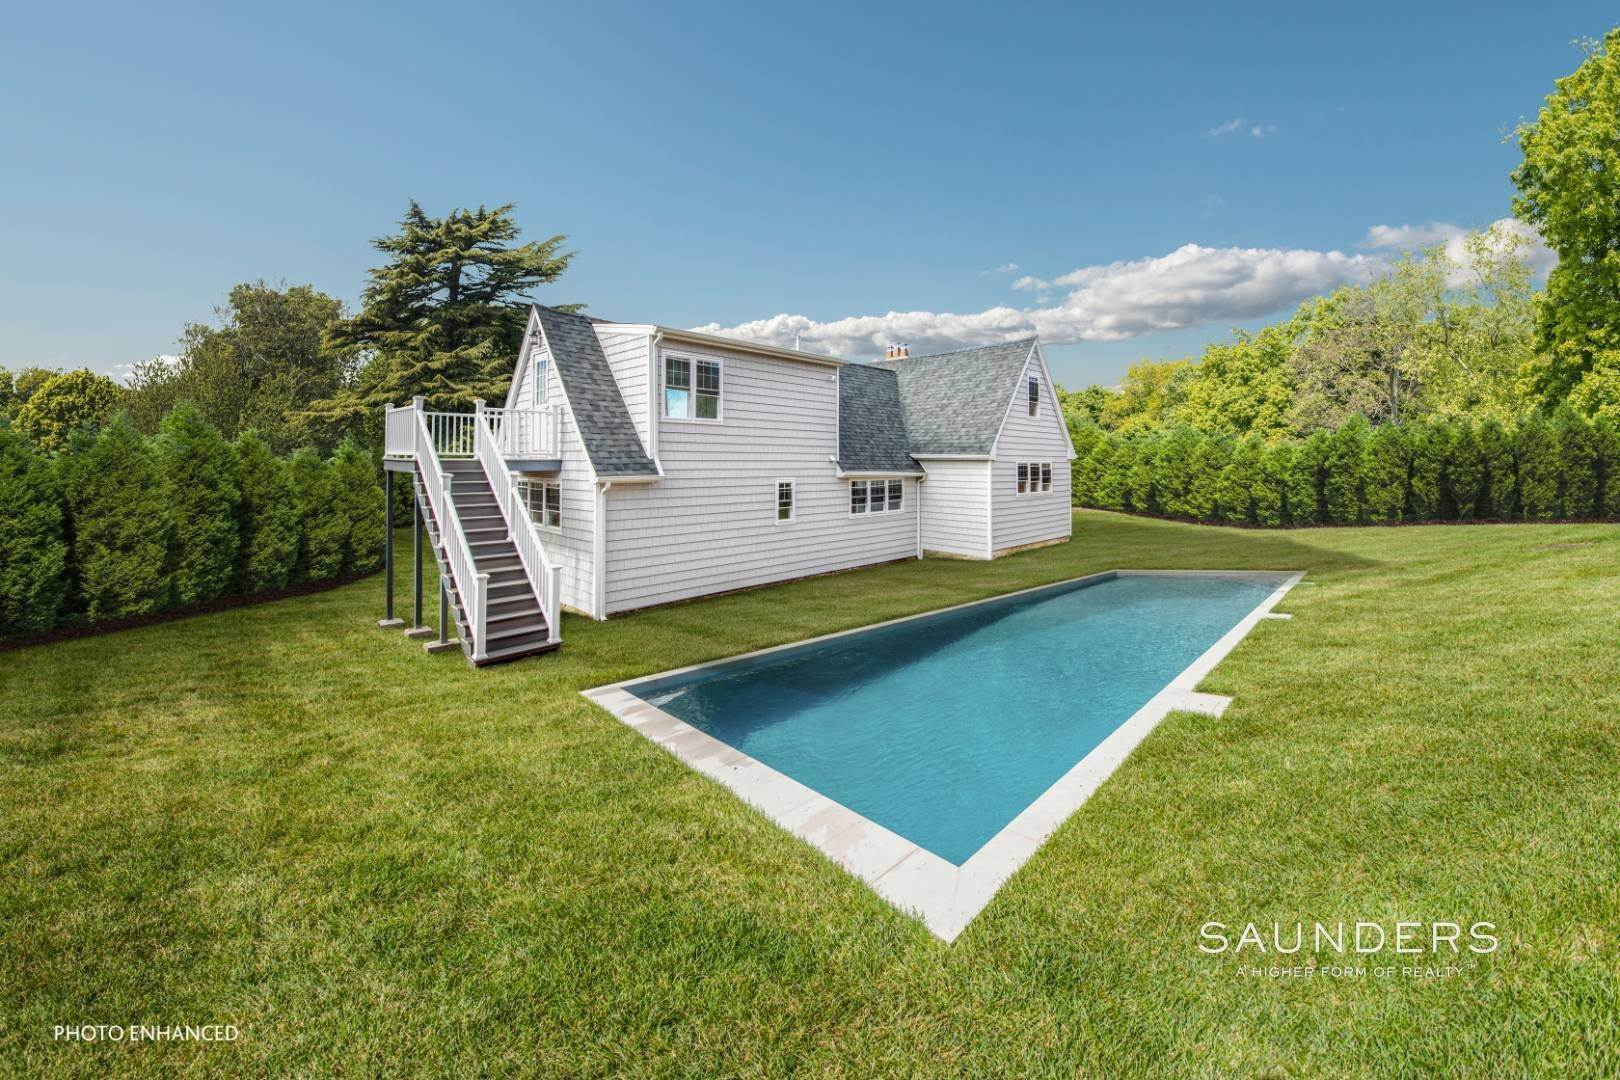 2. Single Family Homes for Sale at Montauk - New Custom Renovation 80 Essex Street, Montauk, East Hampton Town, NY 11954